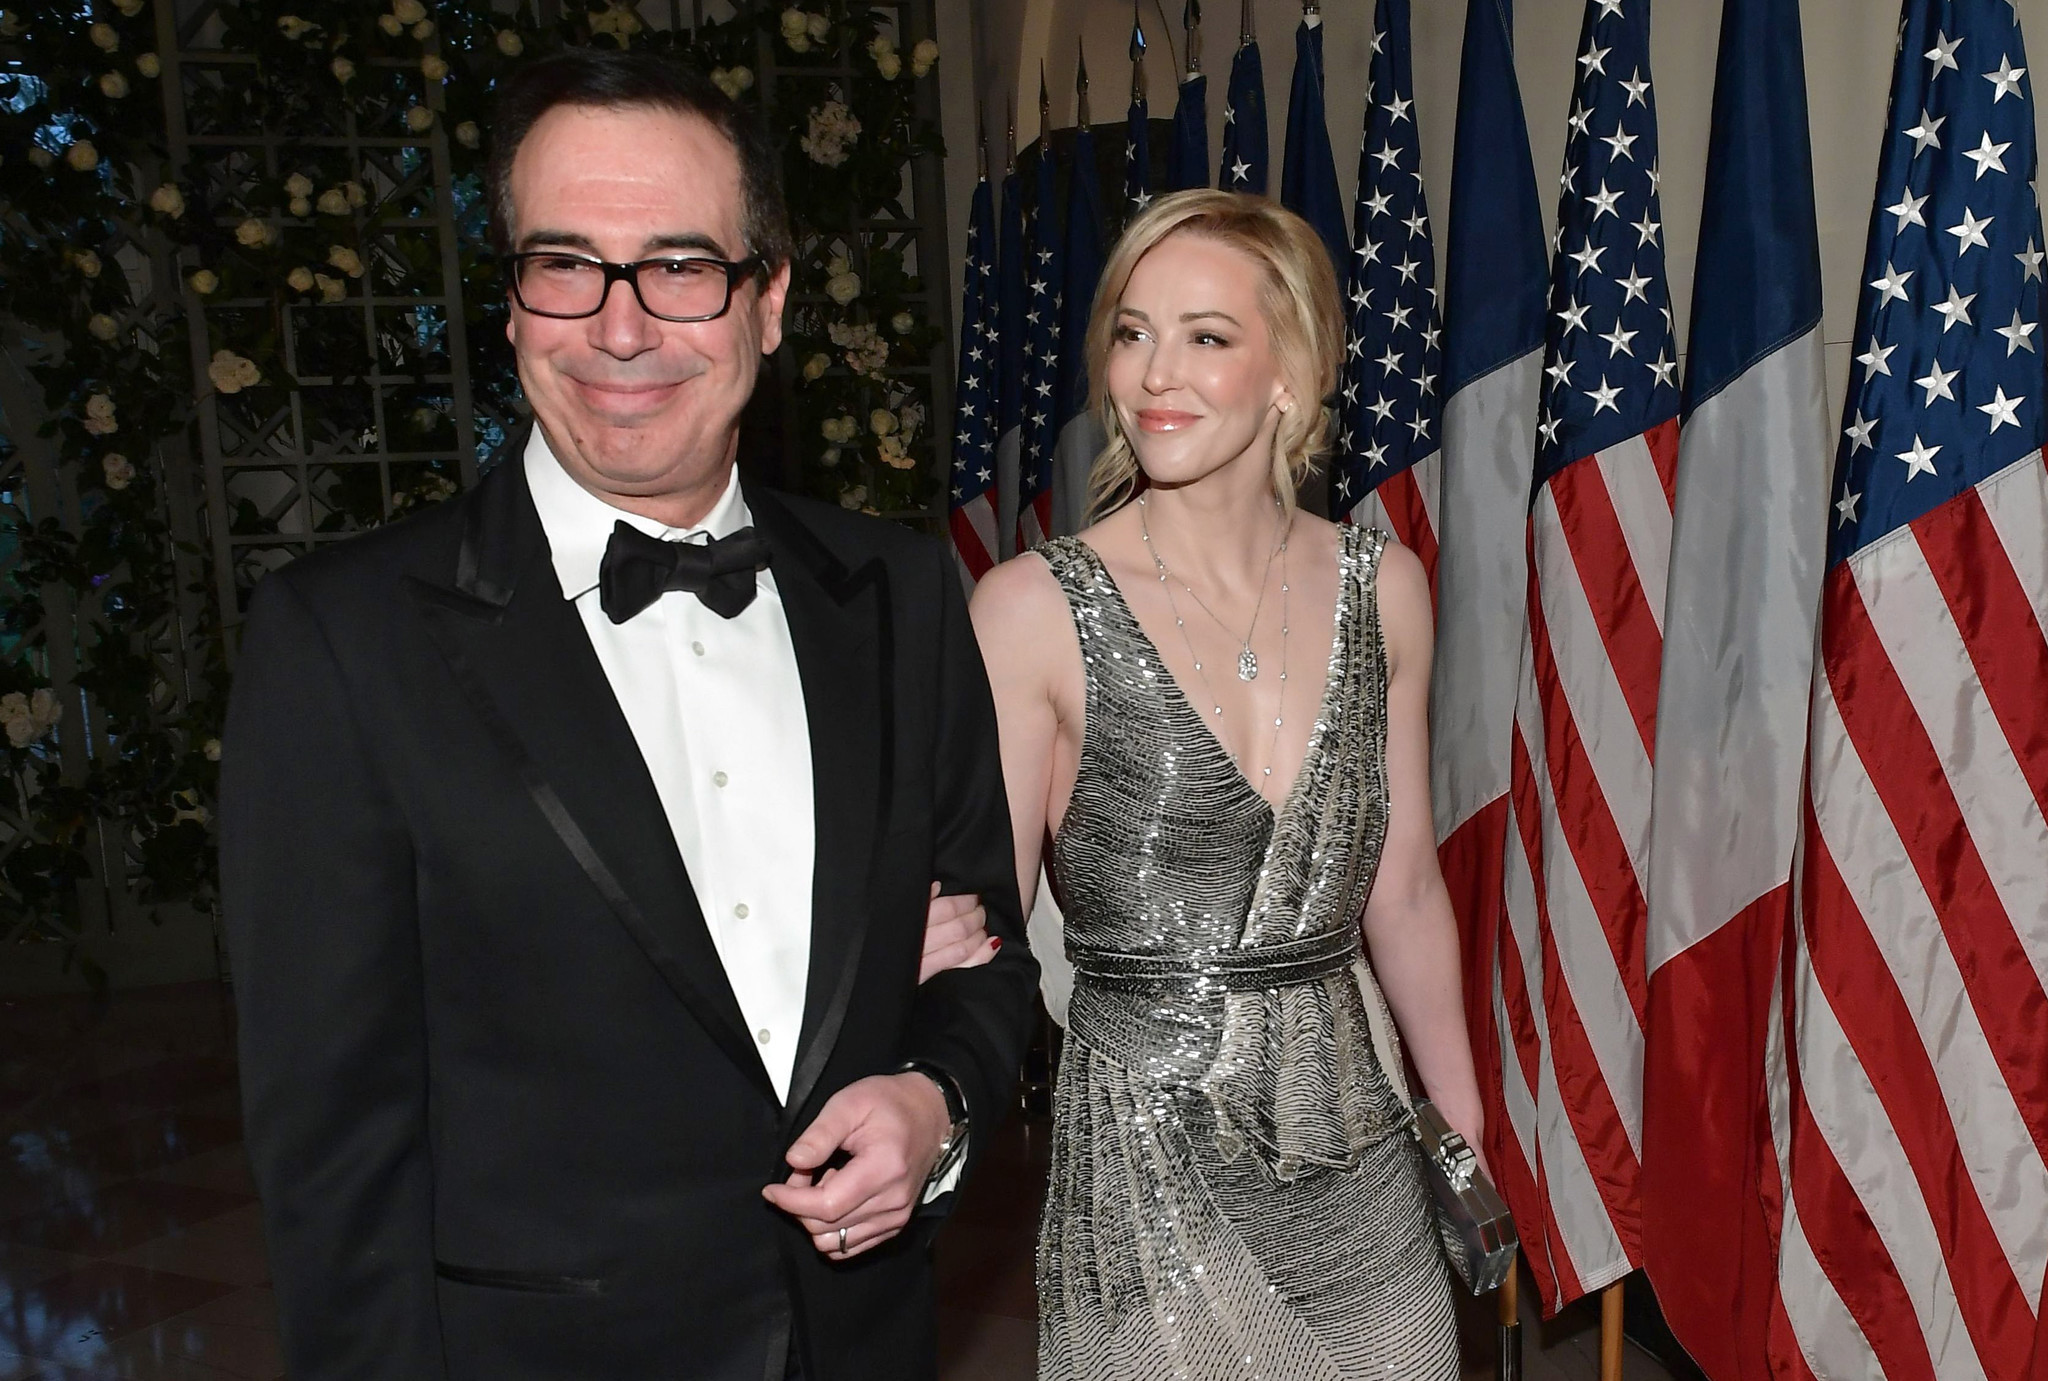 Louise Linton sides with Greta Thunberg in 'shut up and study Econ' climate spat with hubby Steve Mnuchin